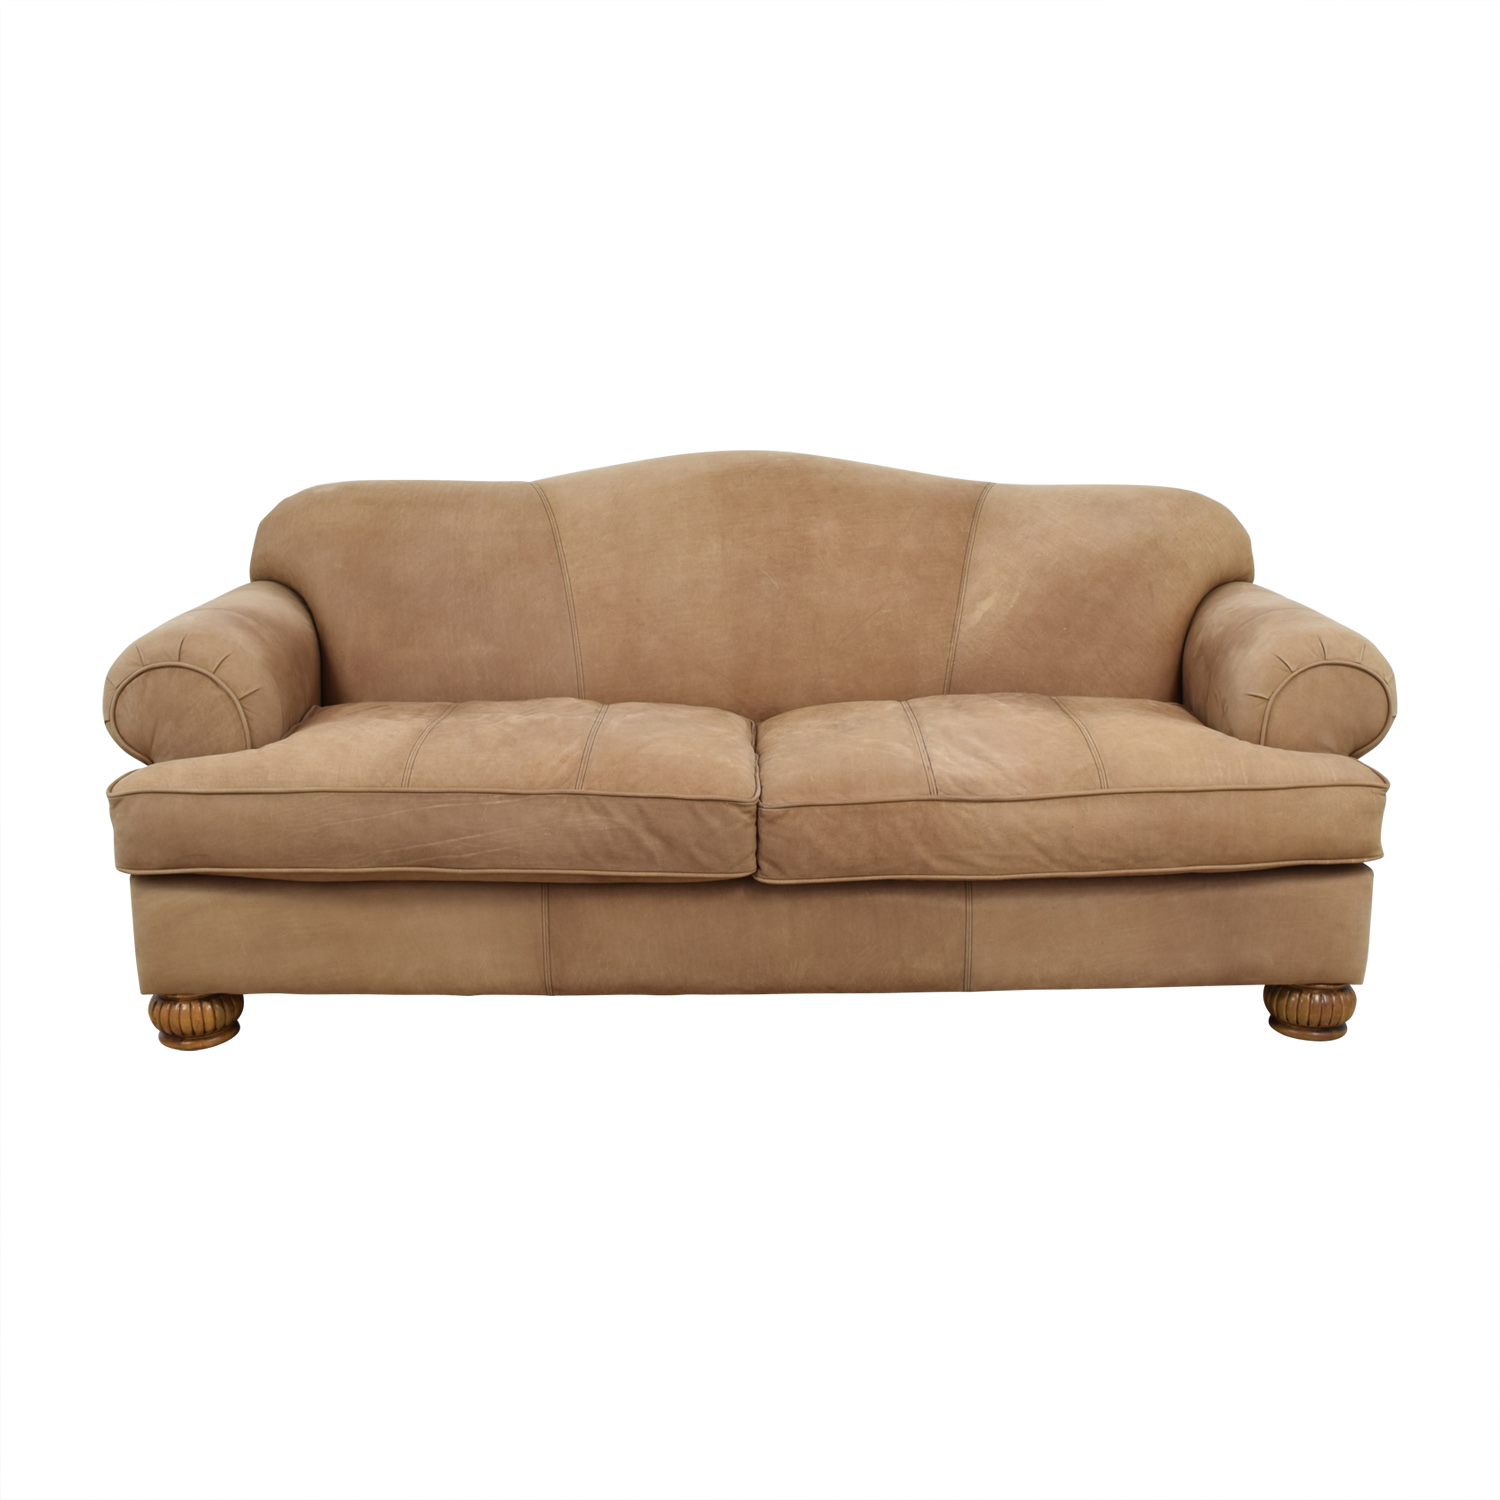 Suede sofas home the honoroak for Suede sectional